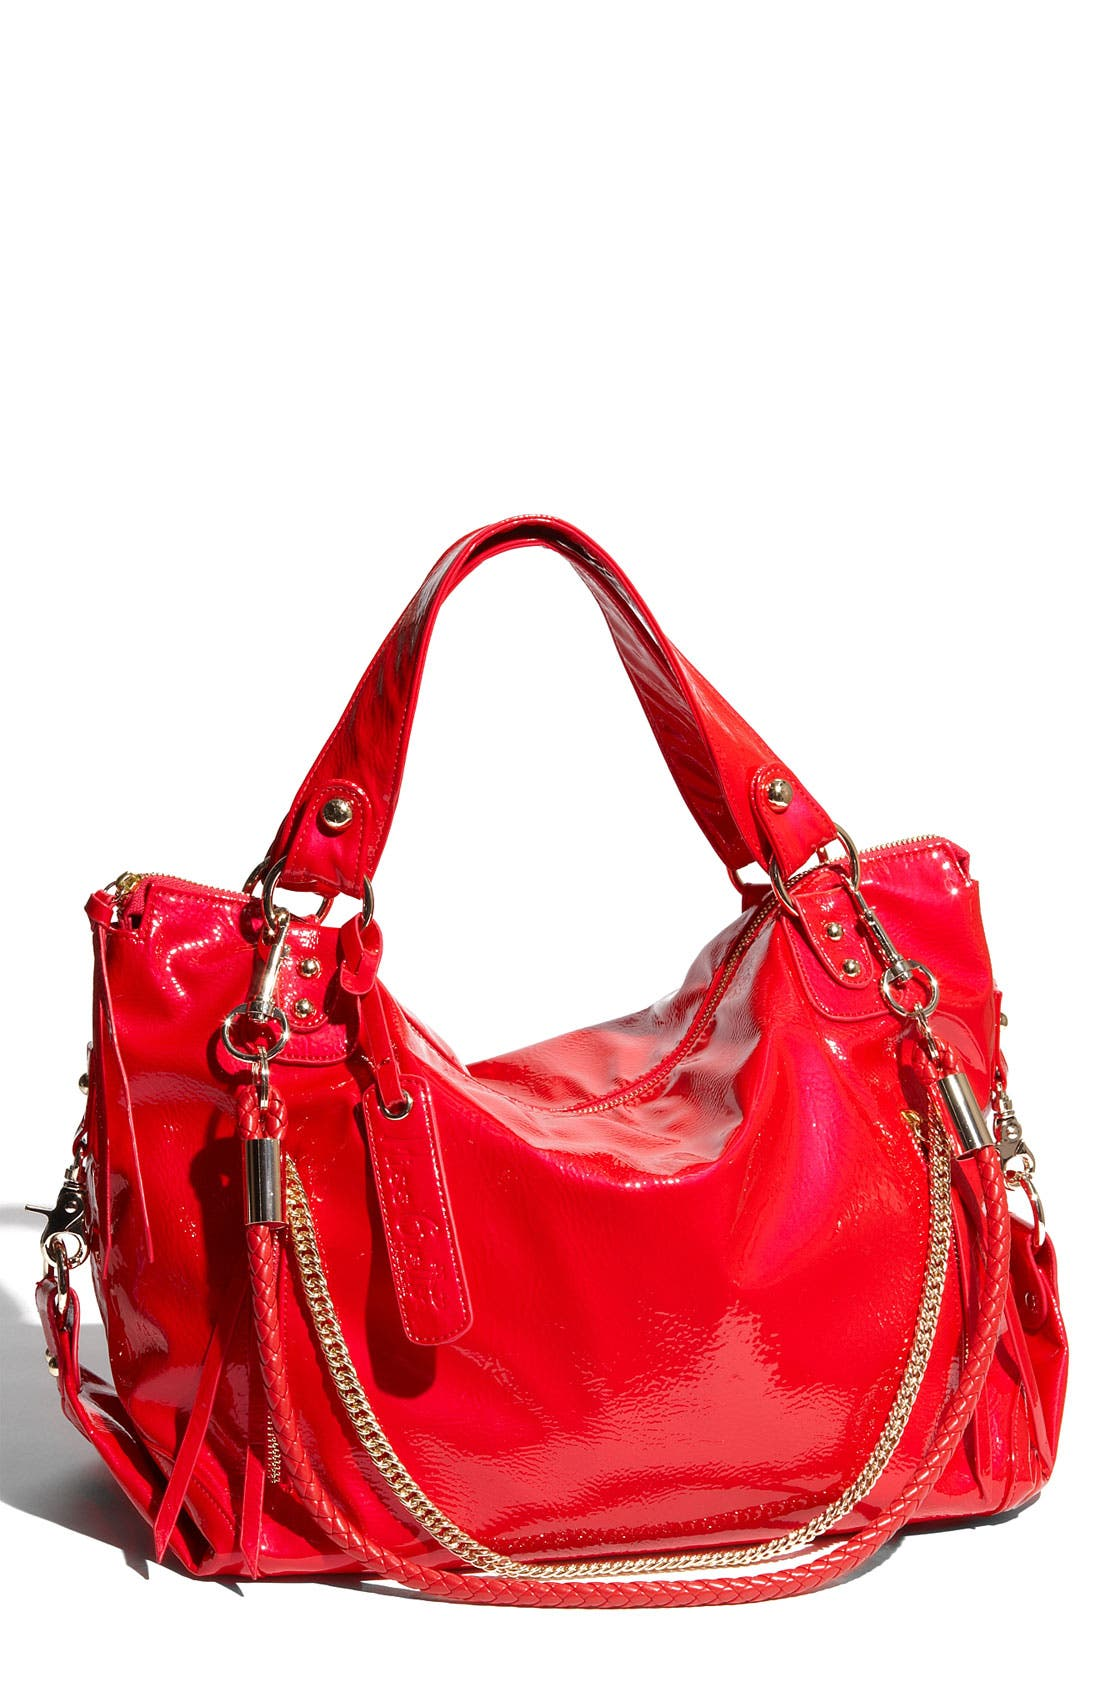 Alternate Image 1 Selected - Miss Gustto 'Bonnie' Faux Patent Leather Shopper